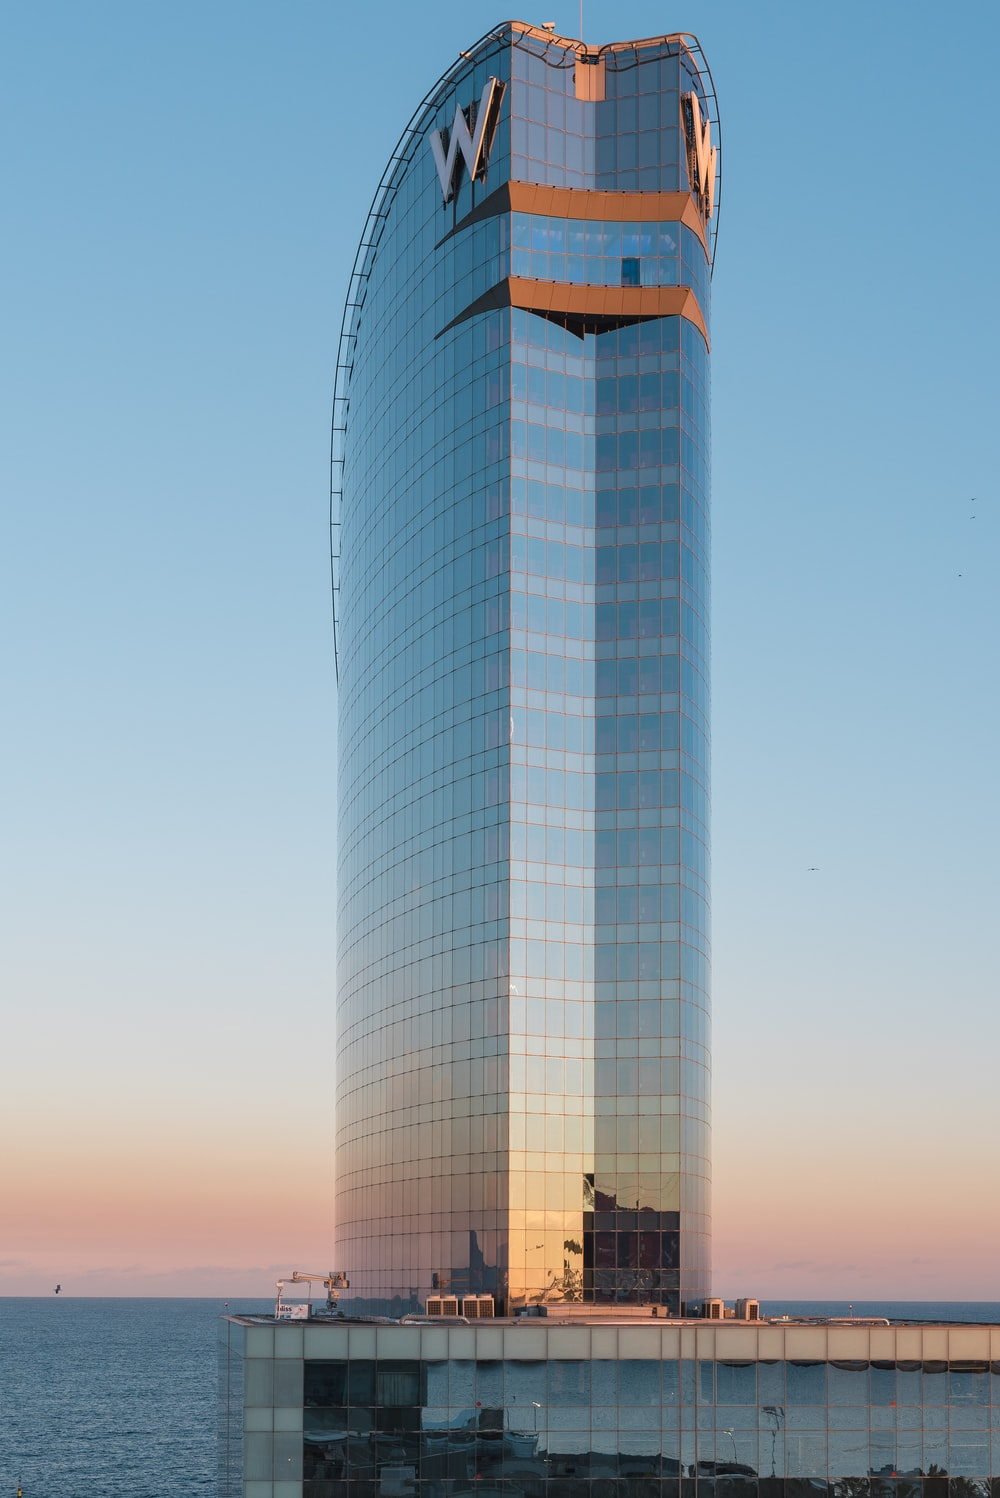 high-rise curtain building during daytime